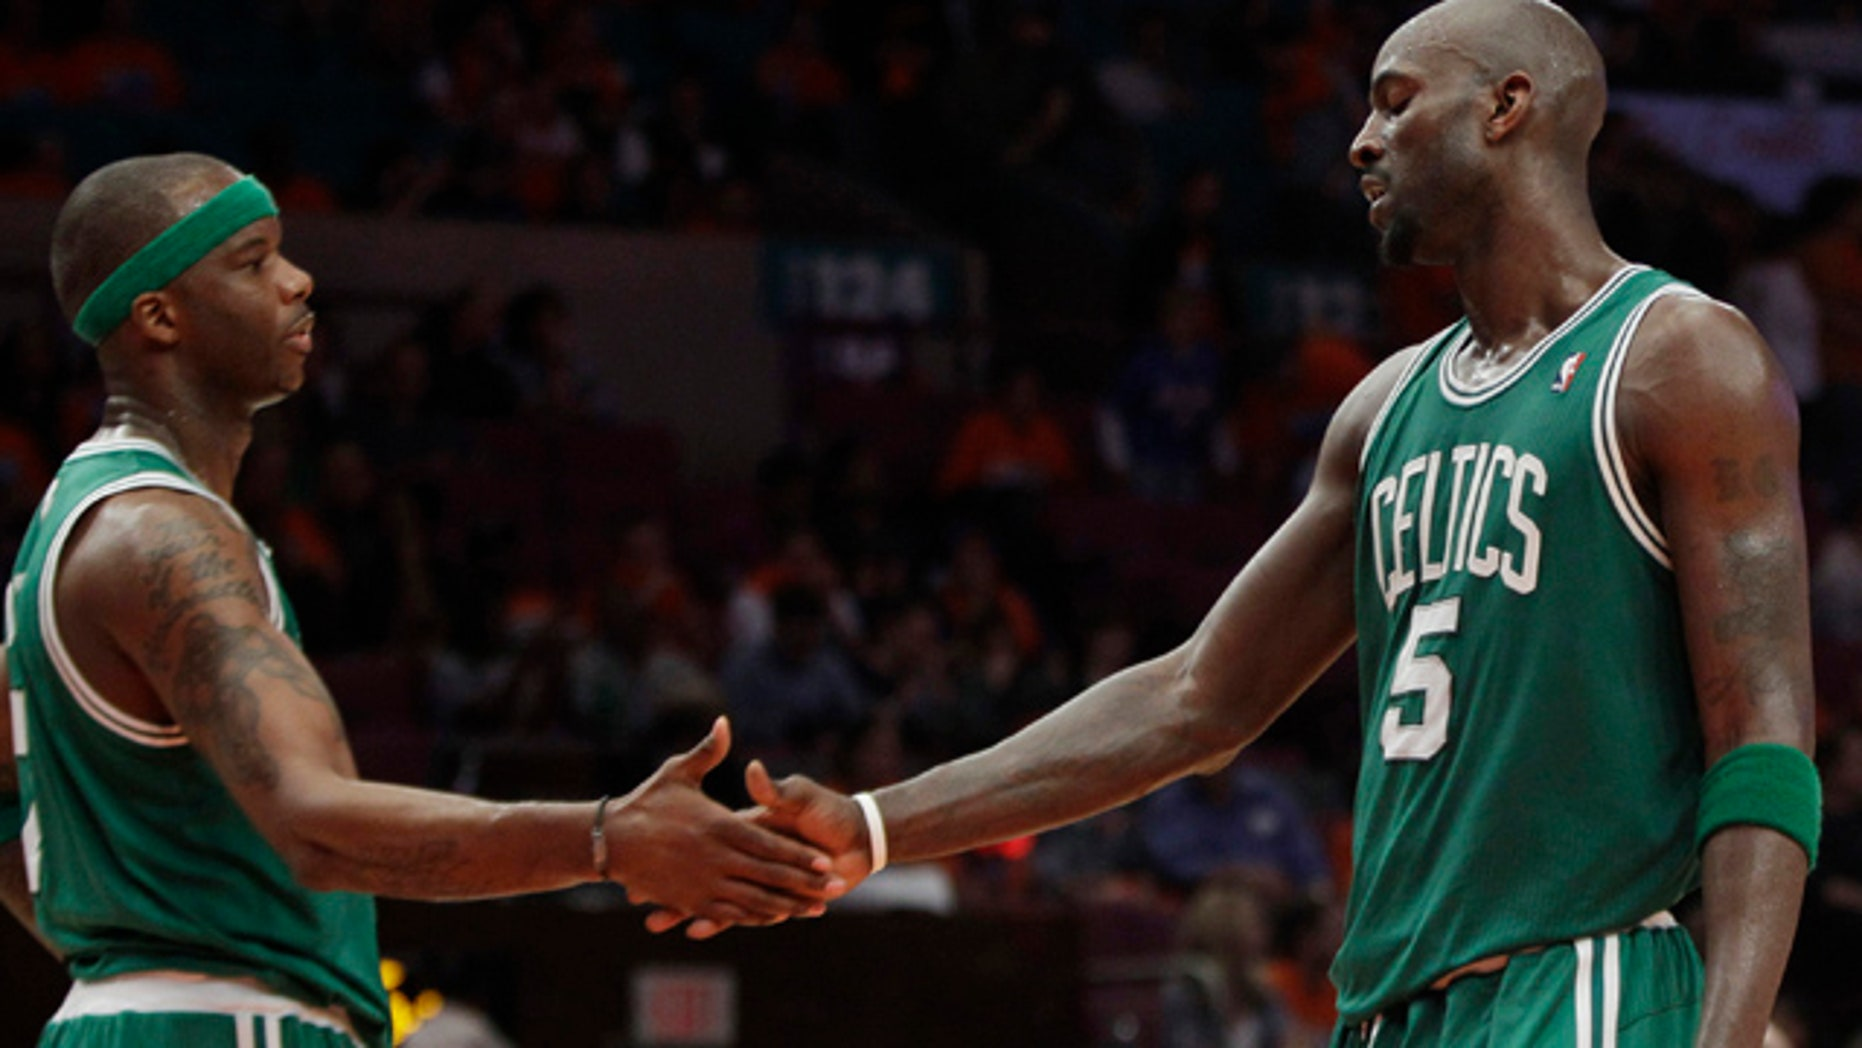 April 24, 2011: Boston Celtics forward Kevin Garnett (5) shakes hands with Jermaine O'Neal after the Celtics defeated the New York Knicks 101-89 in Game 4 of a first-round NBA basketball playoff series at Madison Square Garden in New York.